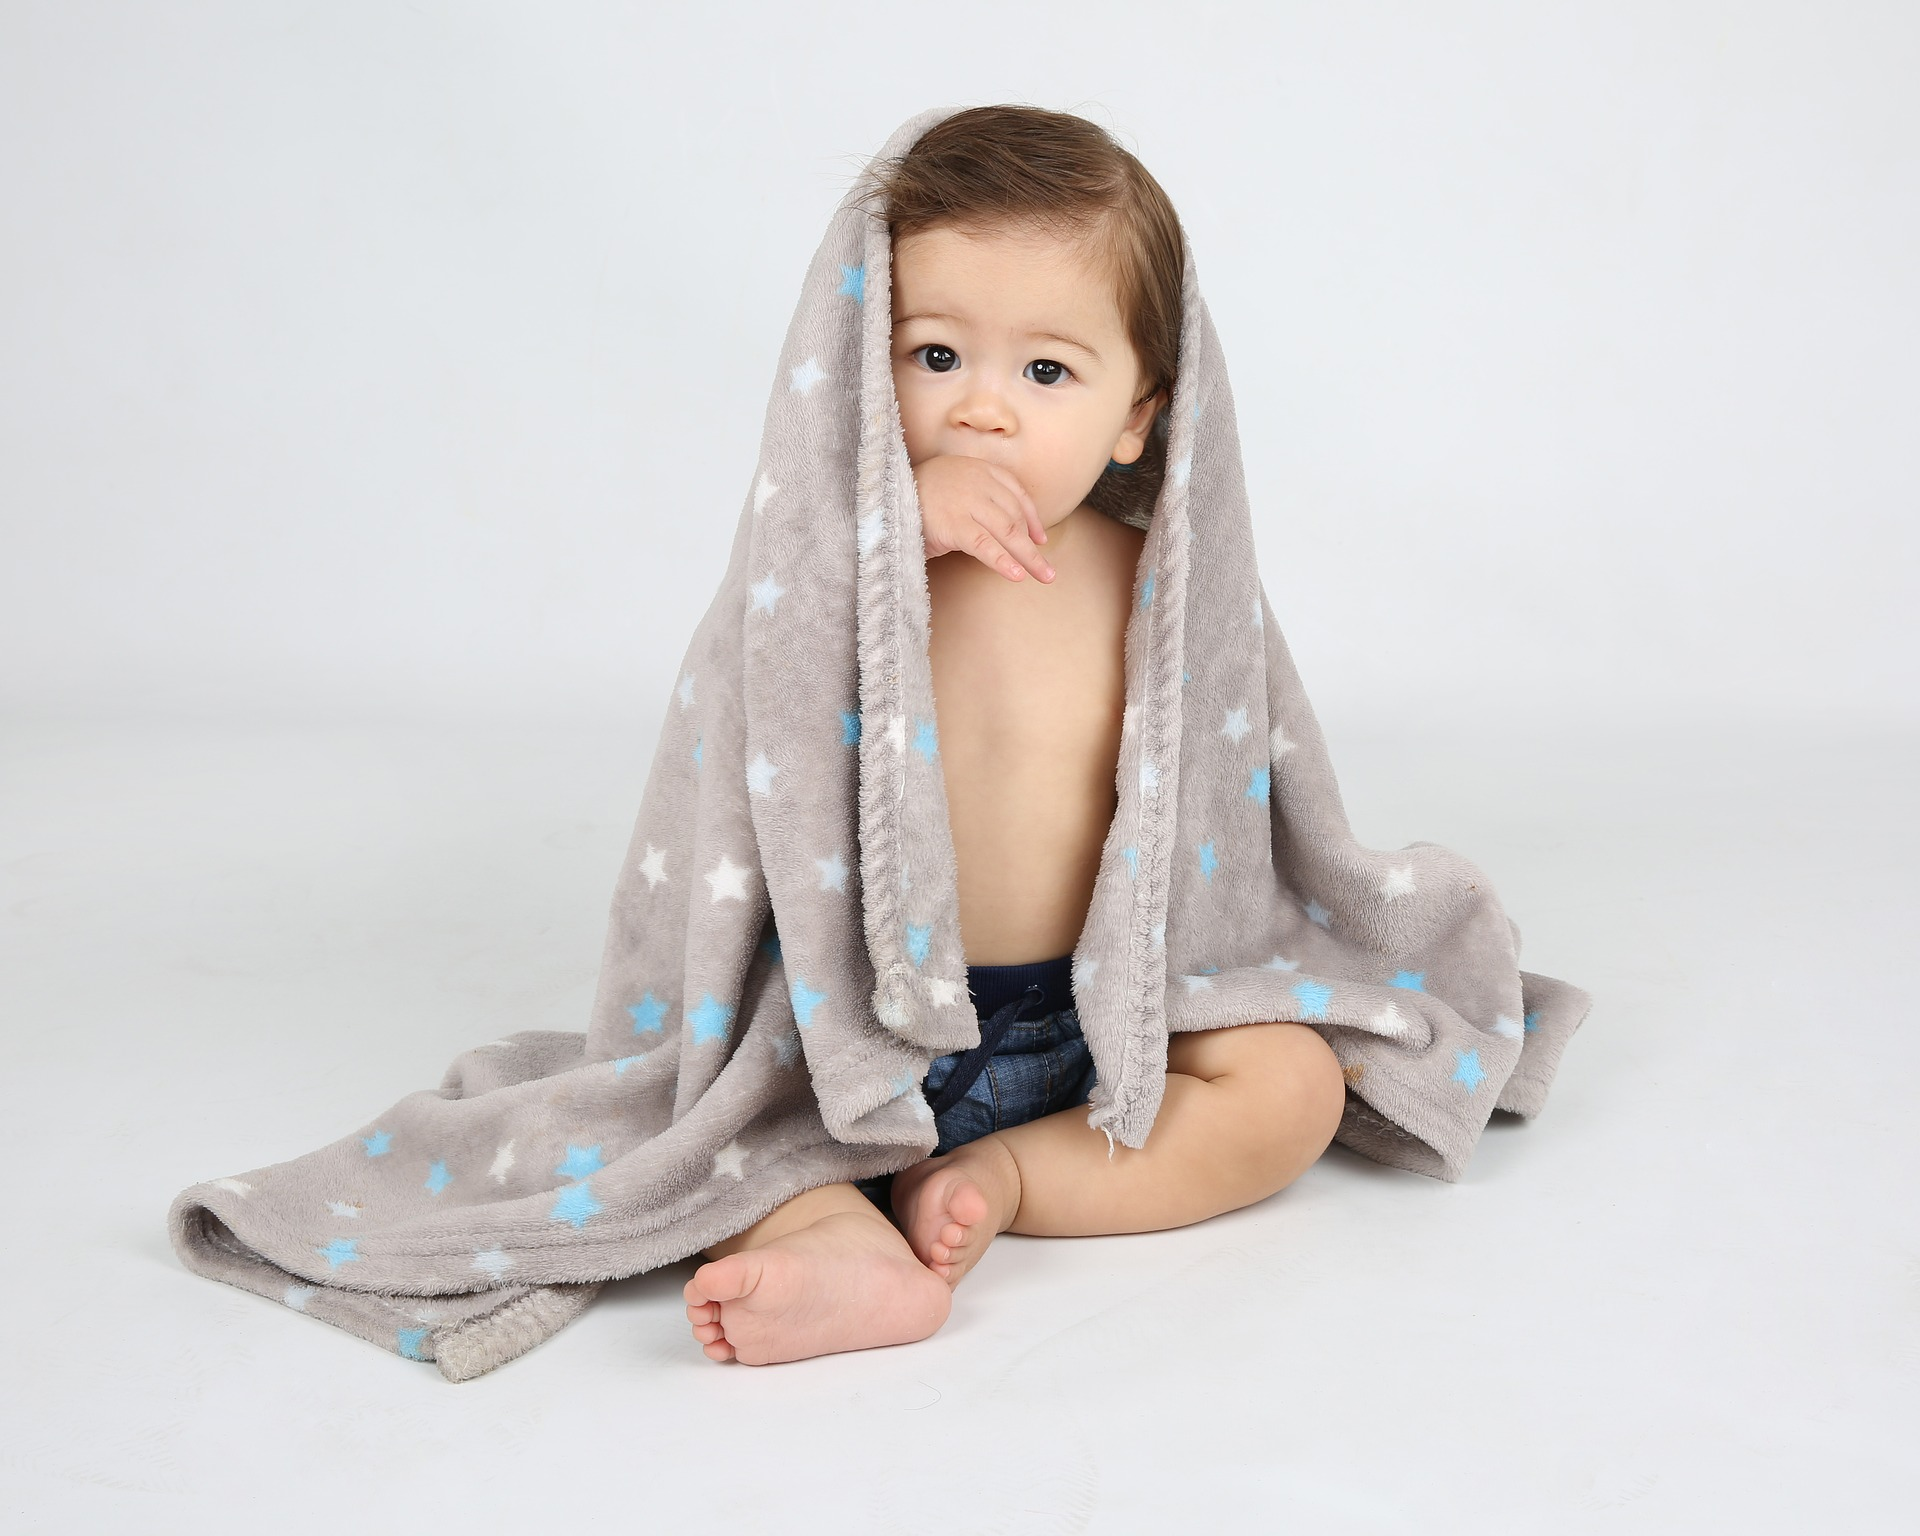 A baby sits against a white background while being draped in a grey blanket with different colored polka-dots.